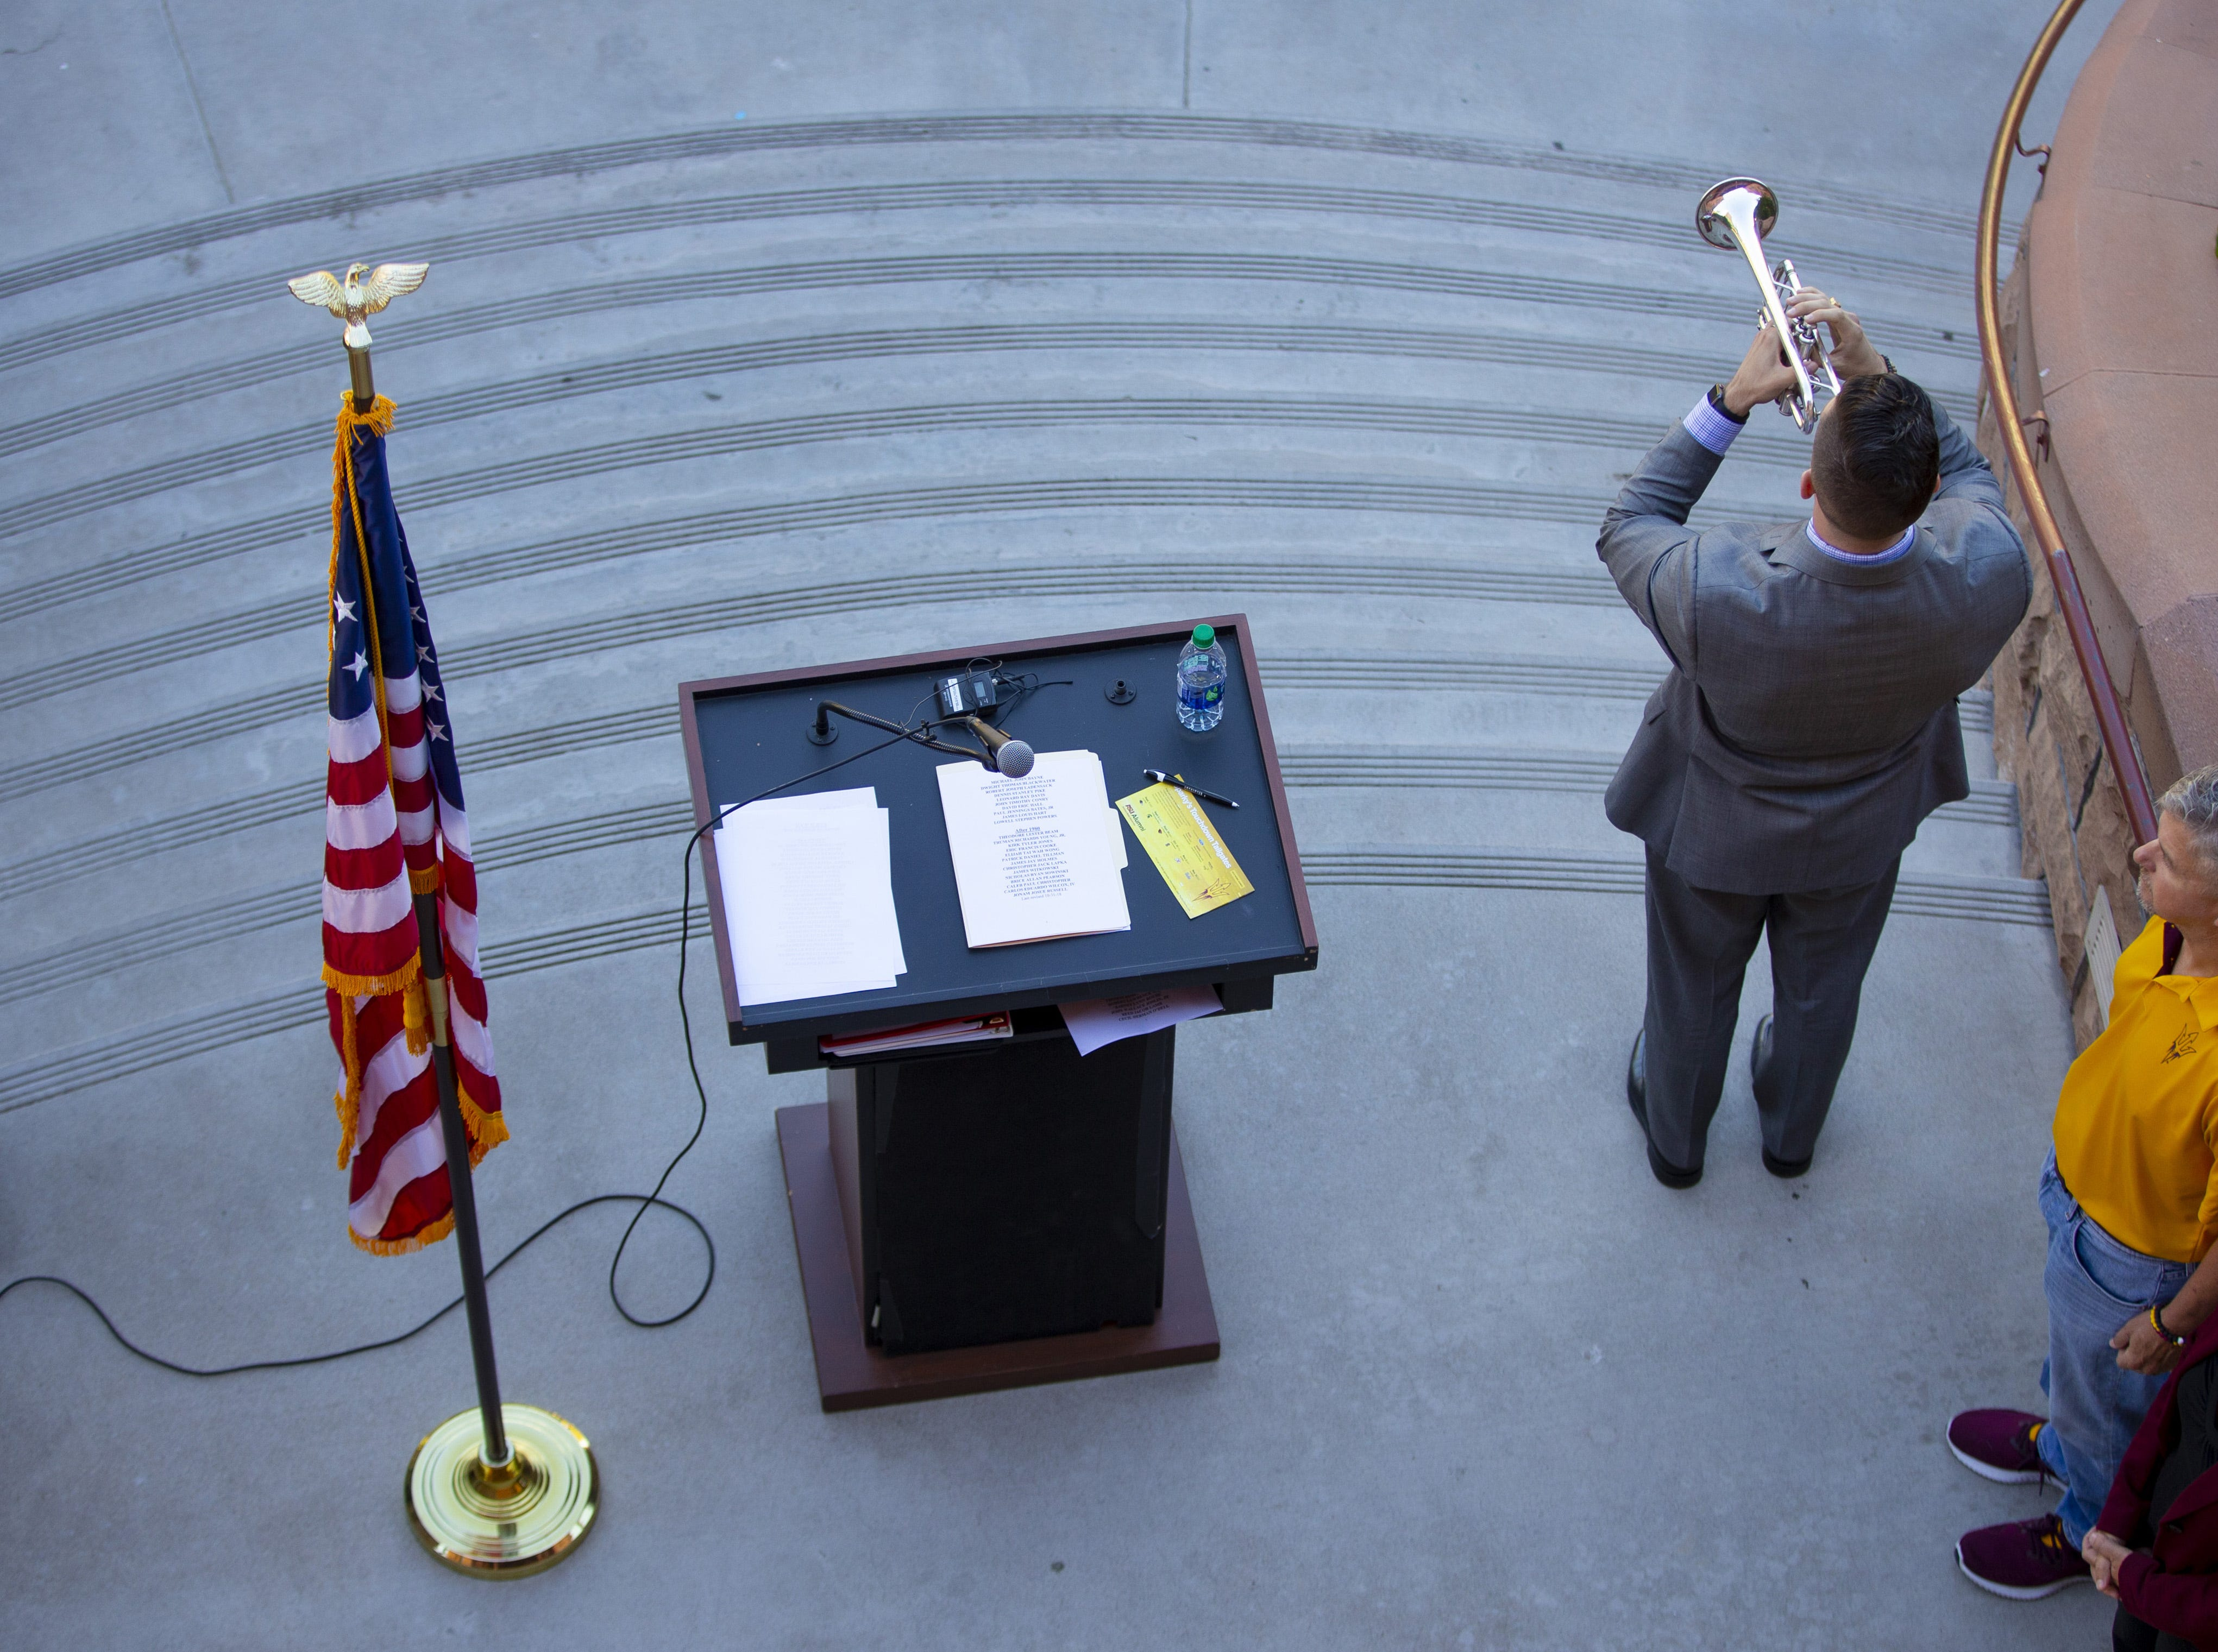 ASU student Aaron Lovelady plays Taps after the reading of names of a 137 ASU Alumni who died while serving their country during an annual tradition on the Tempe campus.